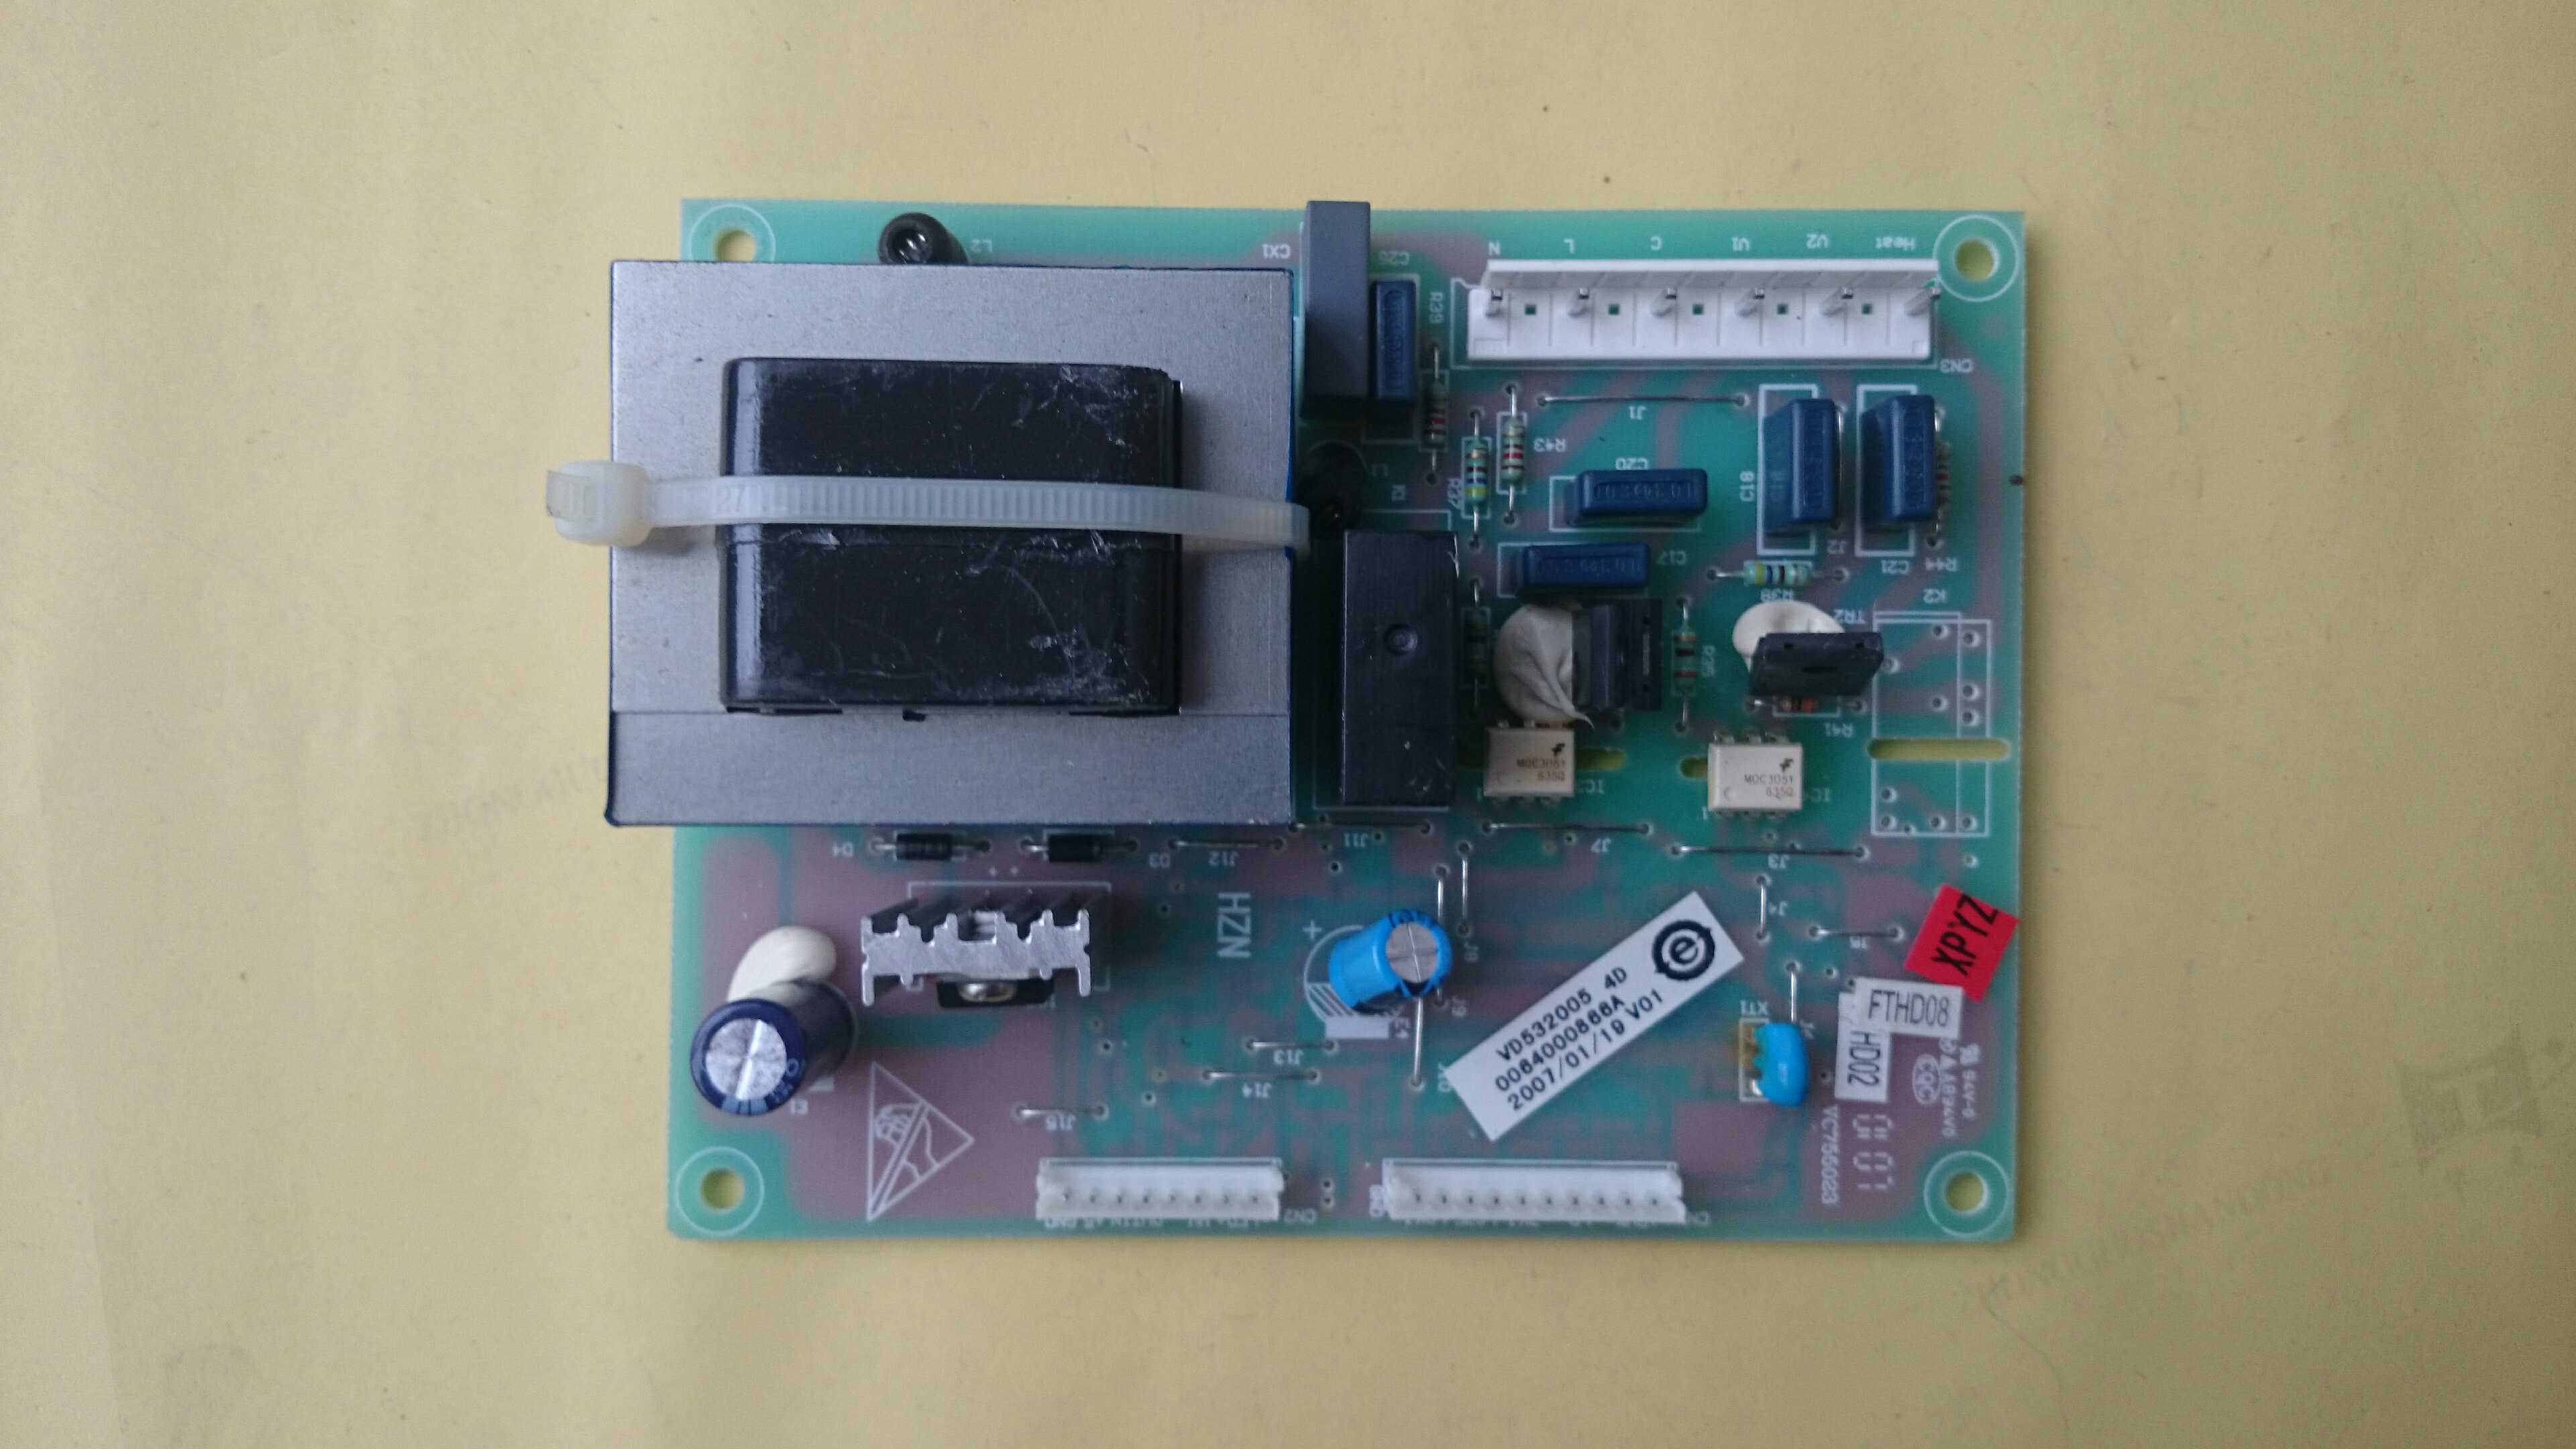 The original Haier refrigerator power main control board 0064000866A for Haier refrigerator BCD-211KS AThe original Haier refrigerator power main control board 0064000866A for Haier refrigerator BCD-211KS A